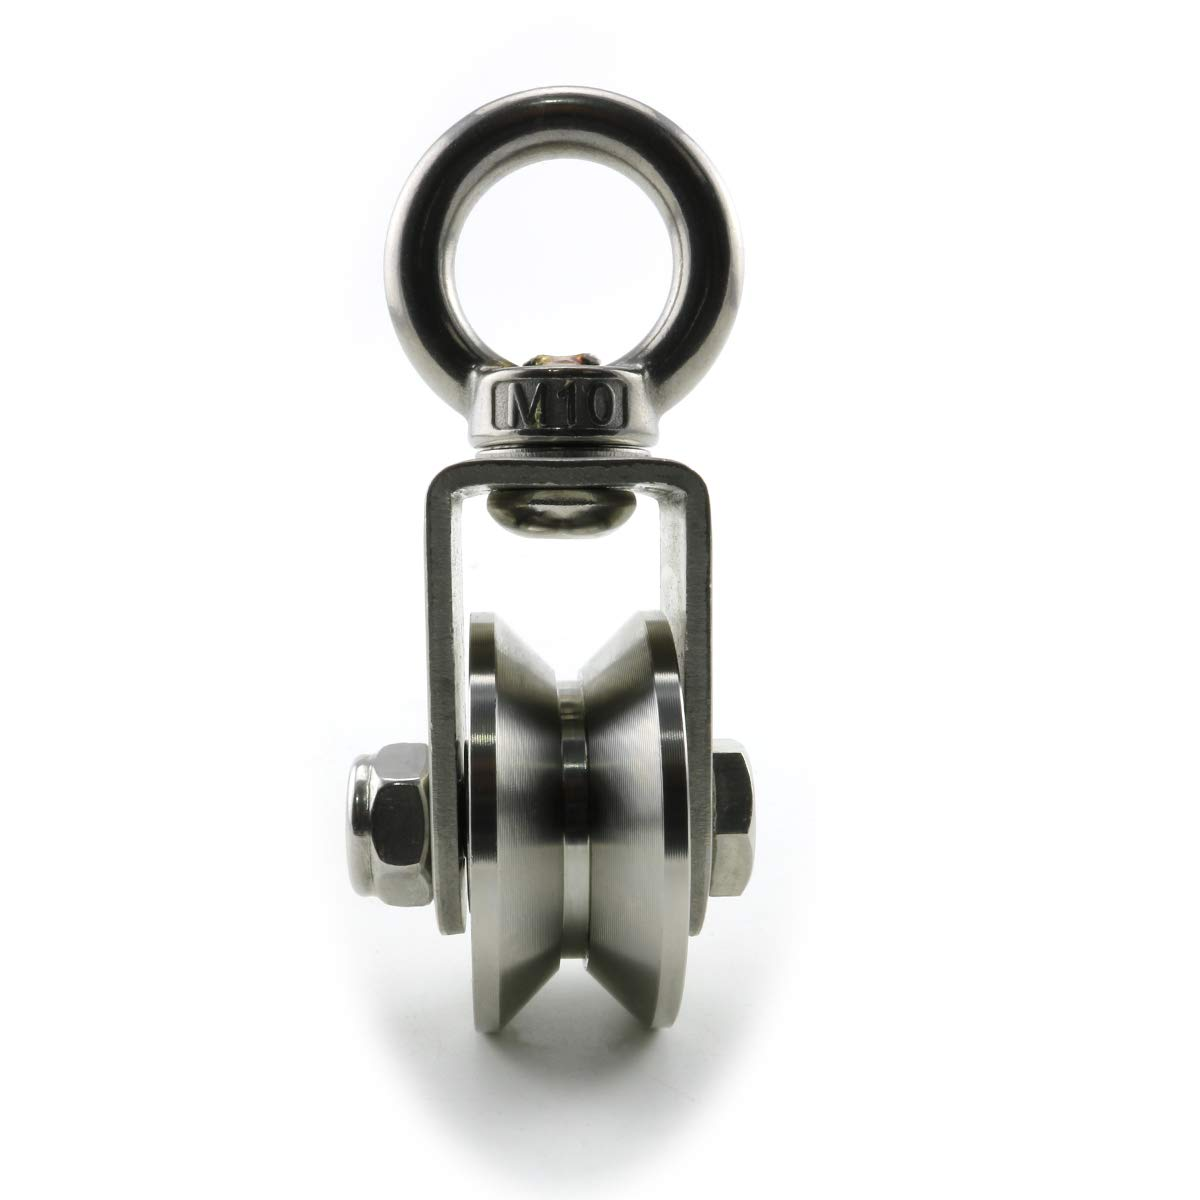 Heyous 1-Pack V Type Swivel Pulley 304 Stainless Steel Duplex Bearing Super-Silent Detachable 360 Degree Rotation Heavy Duty Traction Wheel